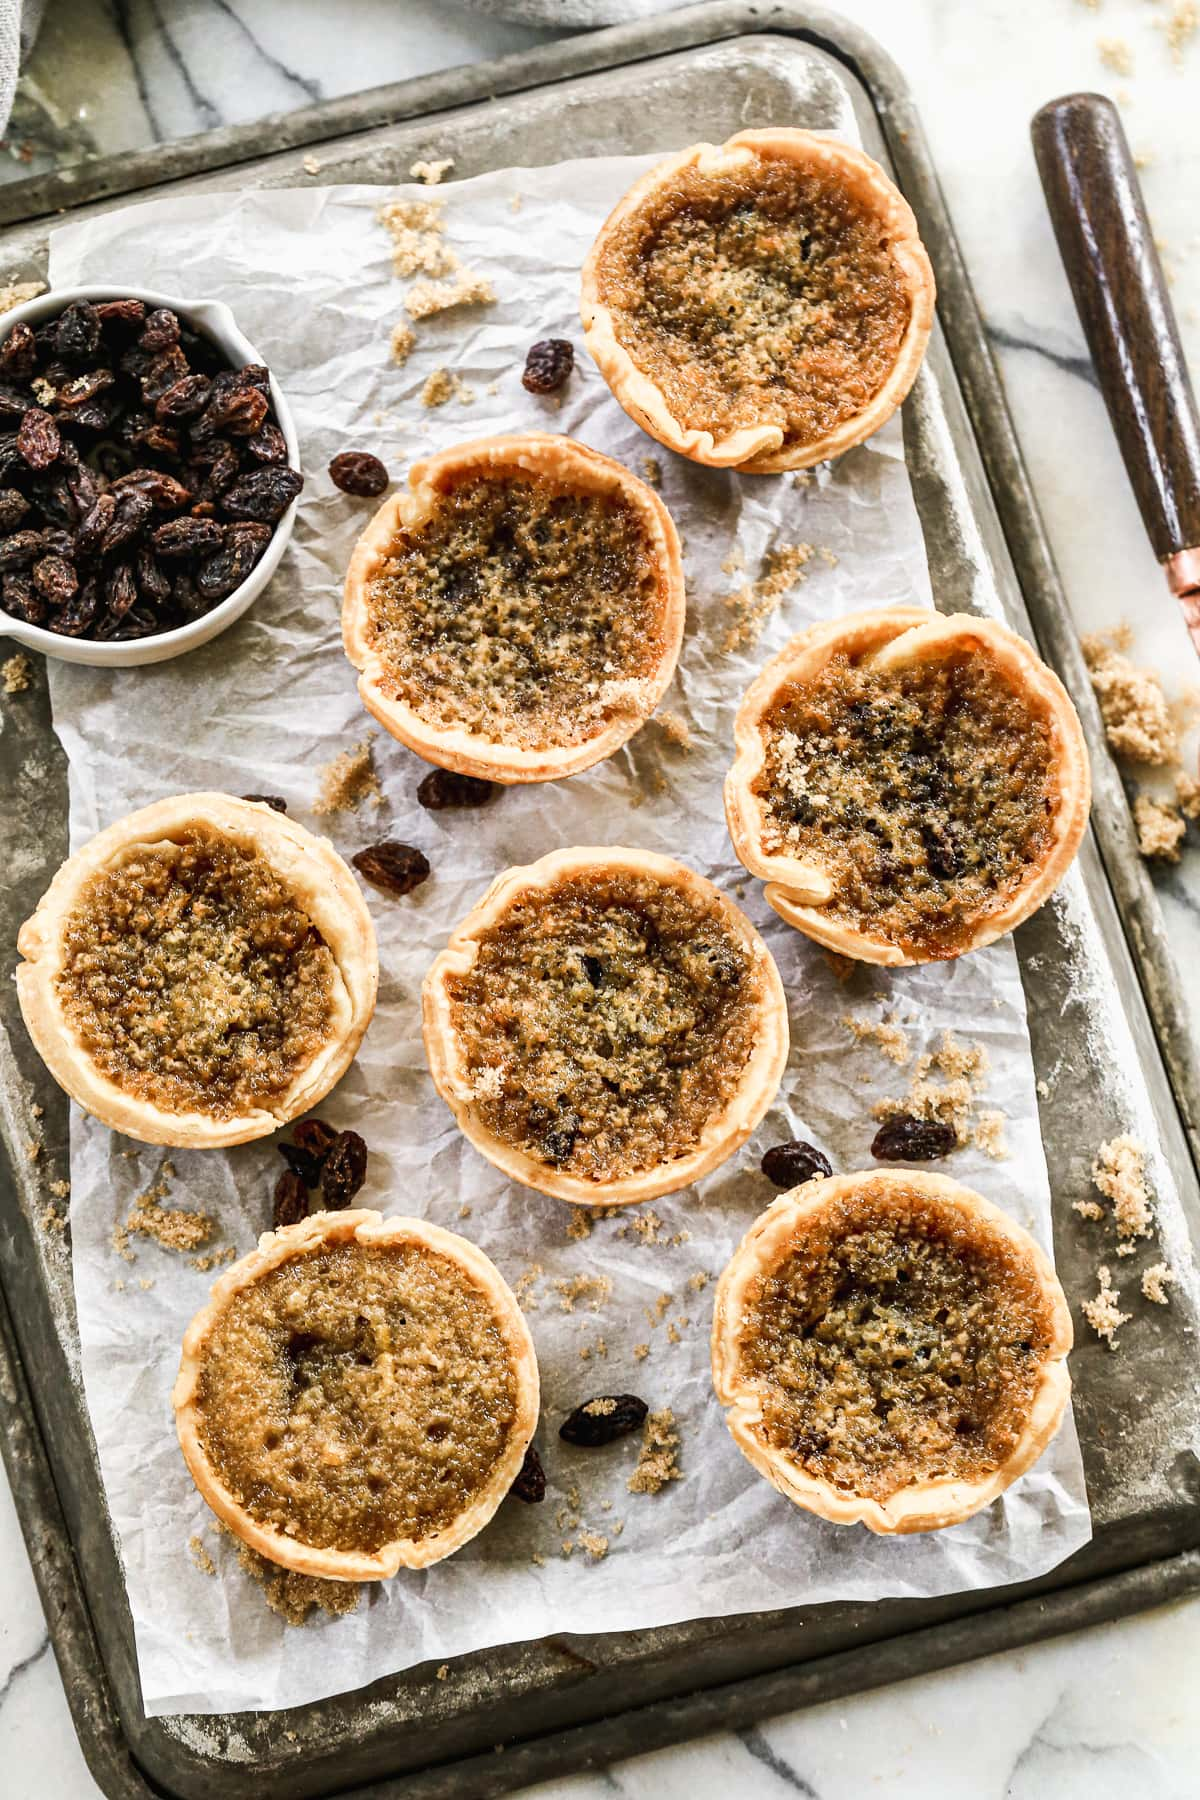 Mini Butter Tarts on a sheet pan with parchment paper, raisins, and brown sugar